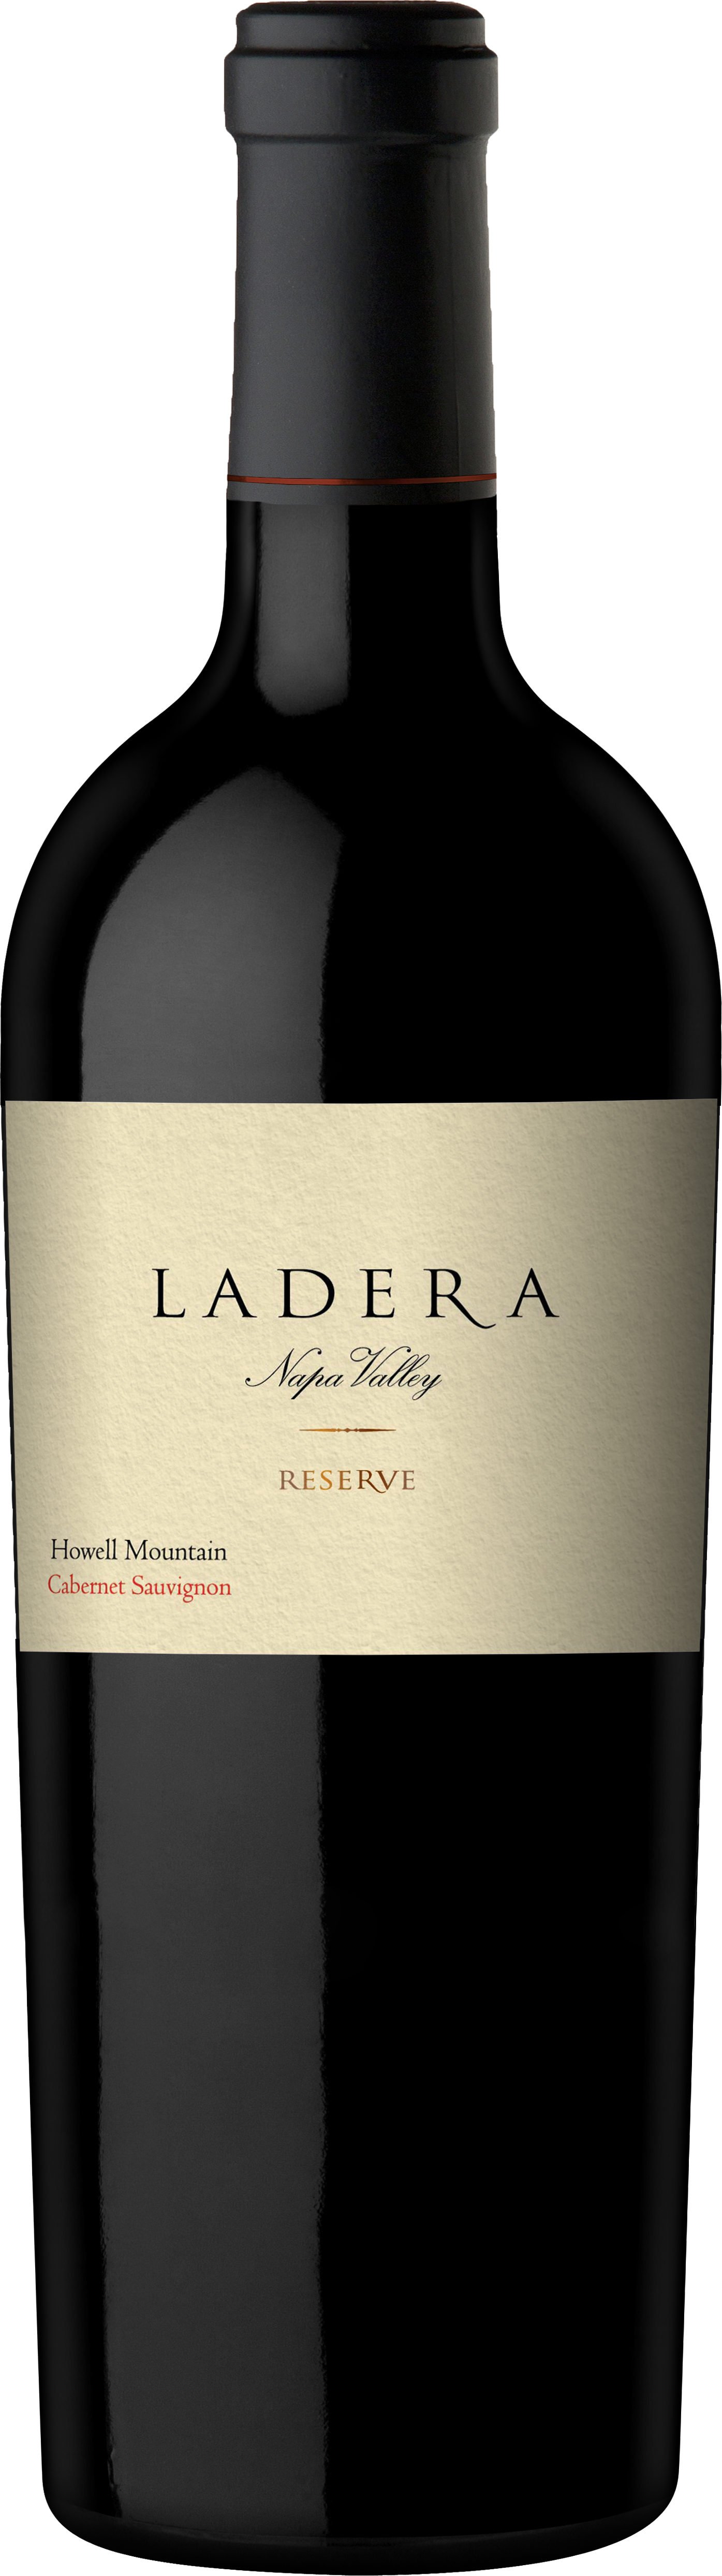 Product Image for 2016 Ladera Howell Mountain Reserve Cabernet Sauvignon